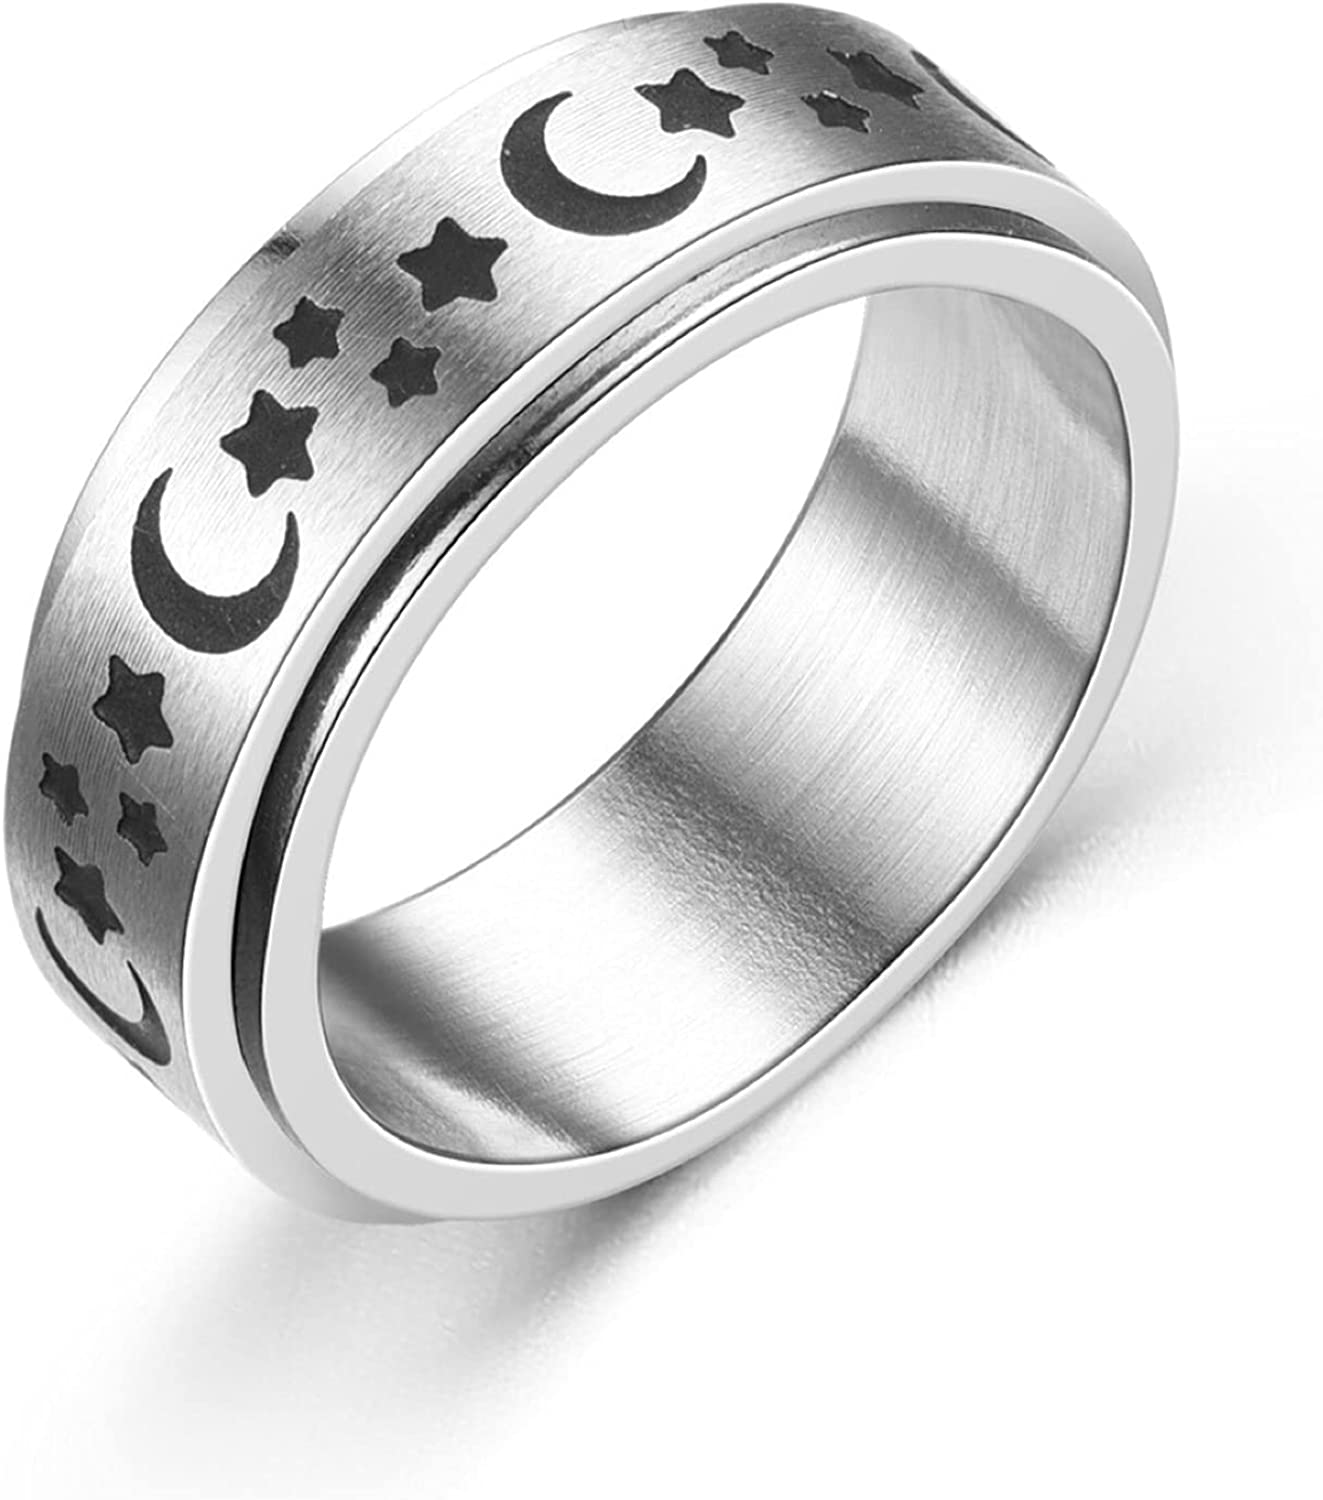 CHUXI Creative Titanium Steel Spinner Rings Moon and Star Fidget Ring Stress Relieving Anxiety Ring Engagement Wedding Band for Women Men Size 6-13